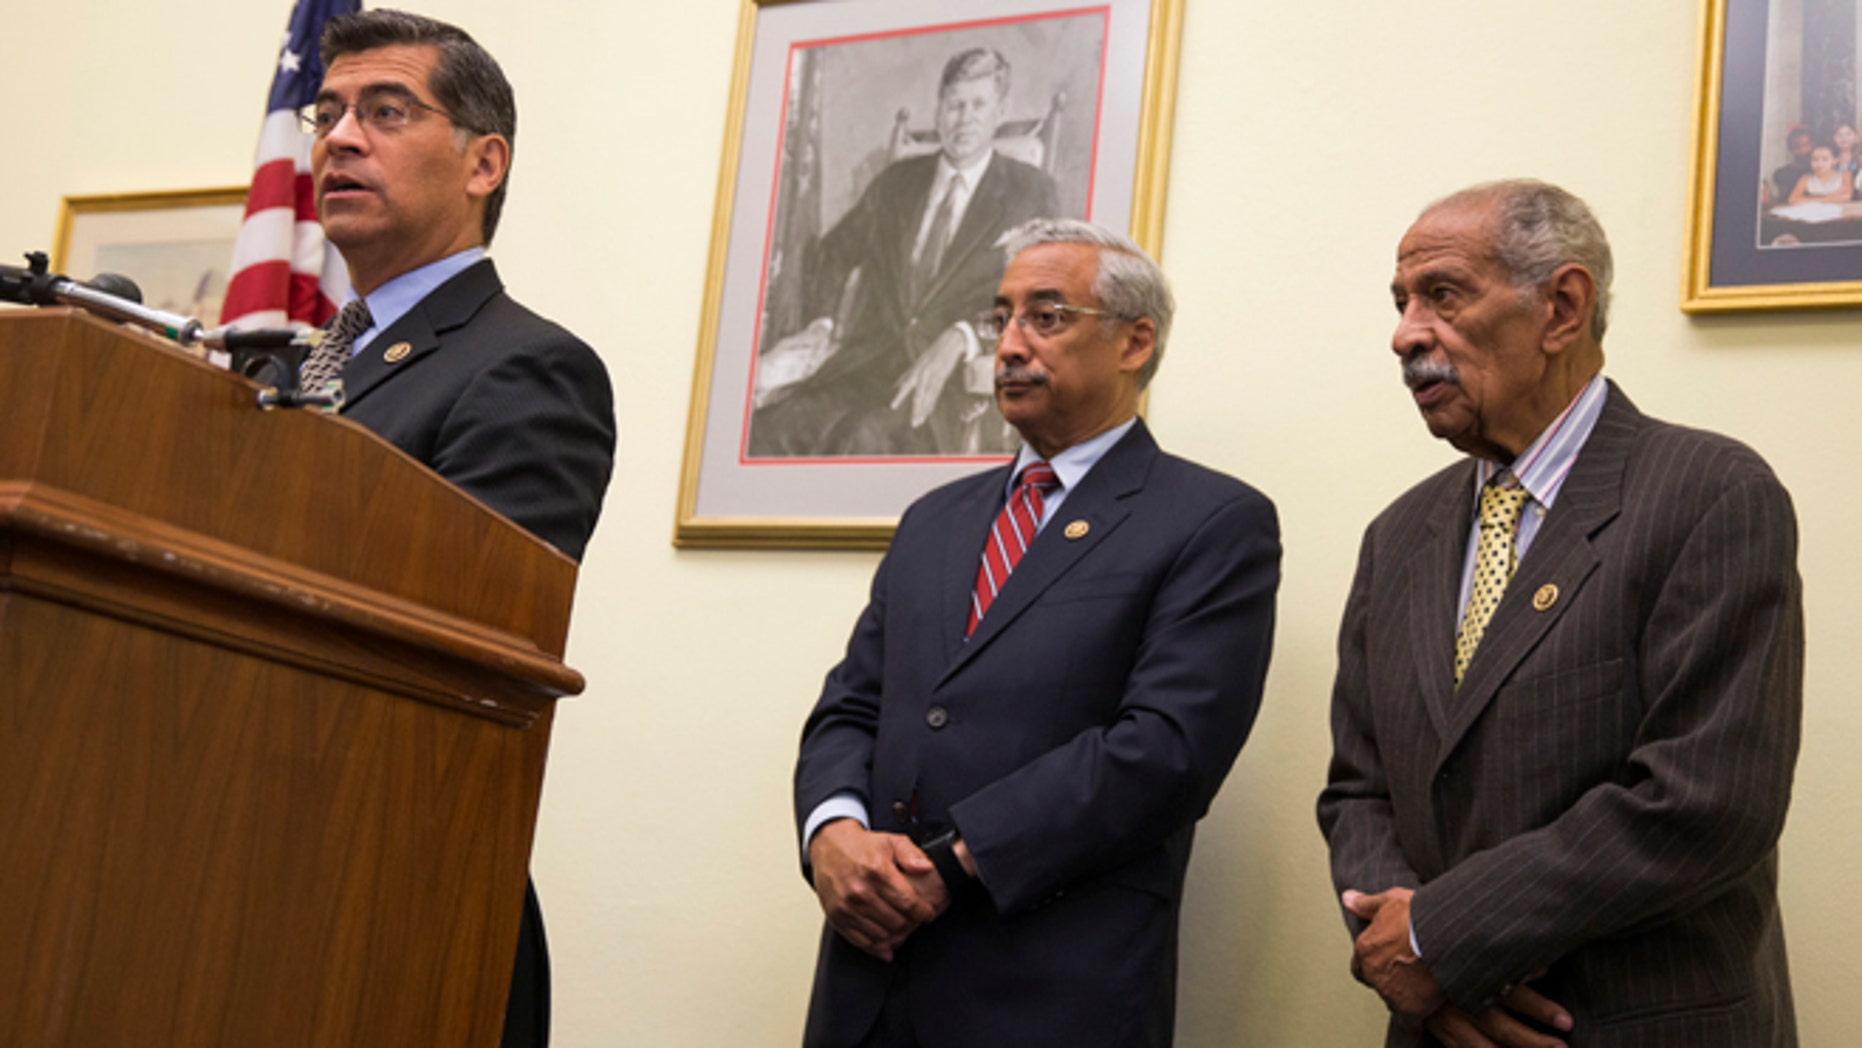 Rep. Xavier Becerra, D-Calif., left, accompanied by Rep. Bobby Scott, D-Va., ranking member on the House Education and the Workforce Committee, center, and Rep. John Conyers, D-Mich., speaks during a news conference on Capitol Hill in Washington, Tuesday, May 17, 2016. Six decades after the Supreme Court outlawed separating students by race, stubborn disparities persist in how the country educates its poor and minority children. A report Tuesday, May 17, 2016, by the nonpartisan Government Accountability Office found deepening segregation of black and Hispanic students nationwide, with a large increase among K-12 public schools.  (AP Photo/Evan Vucci)